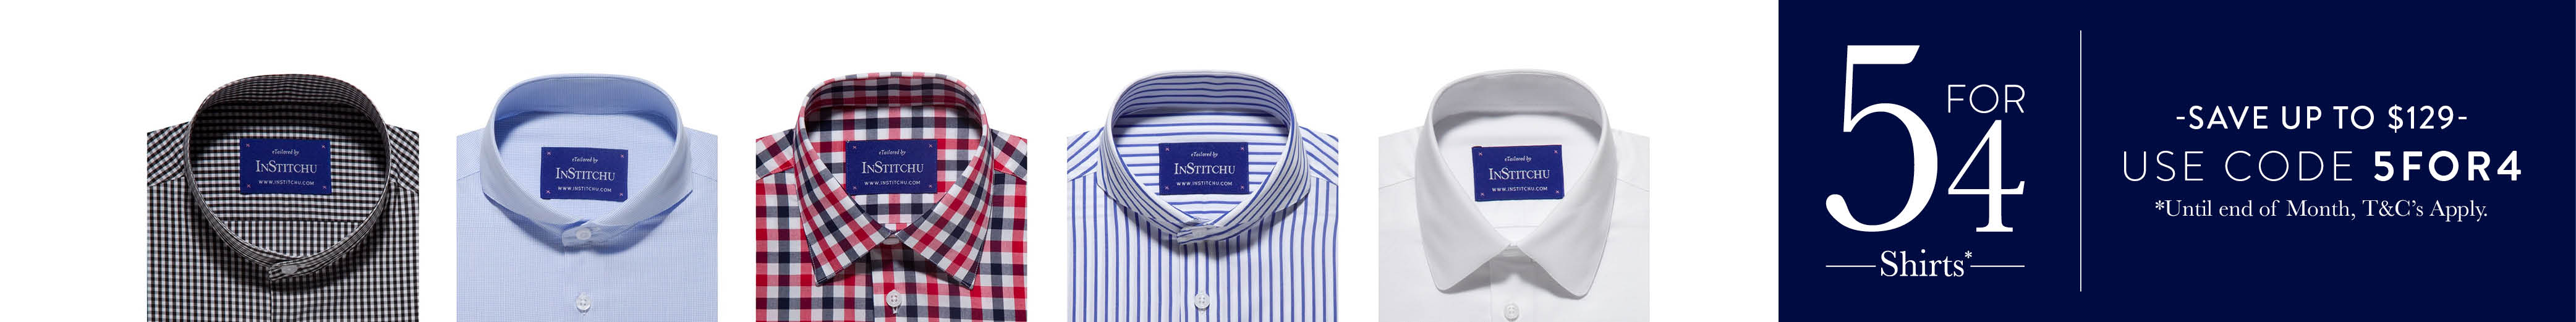 Custom, tailored shirt collection